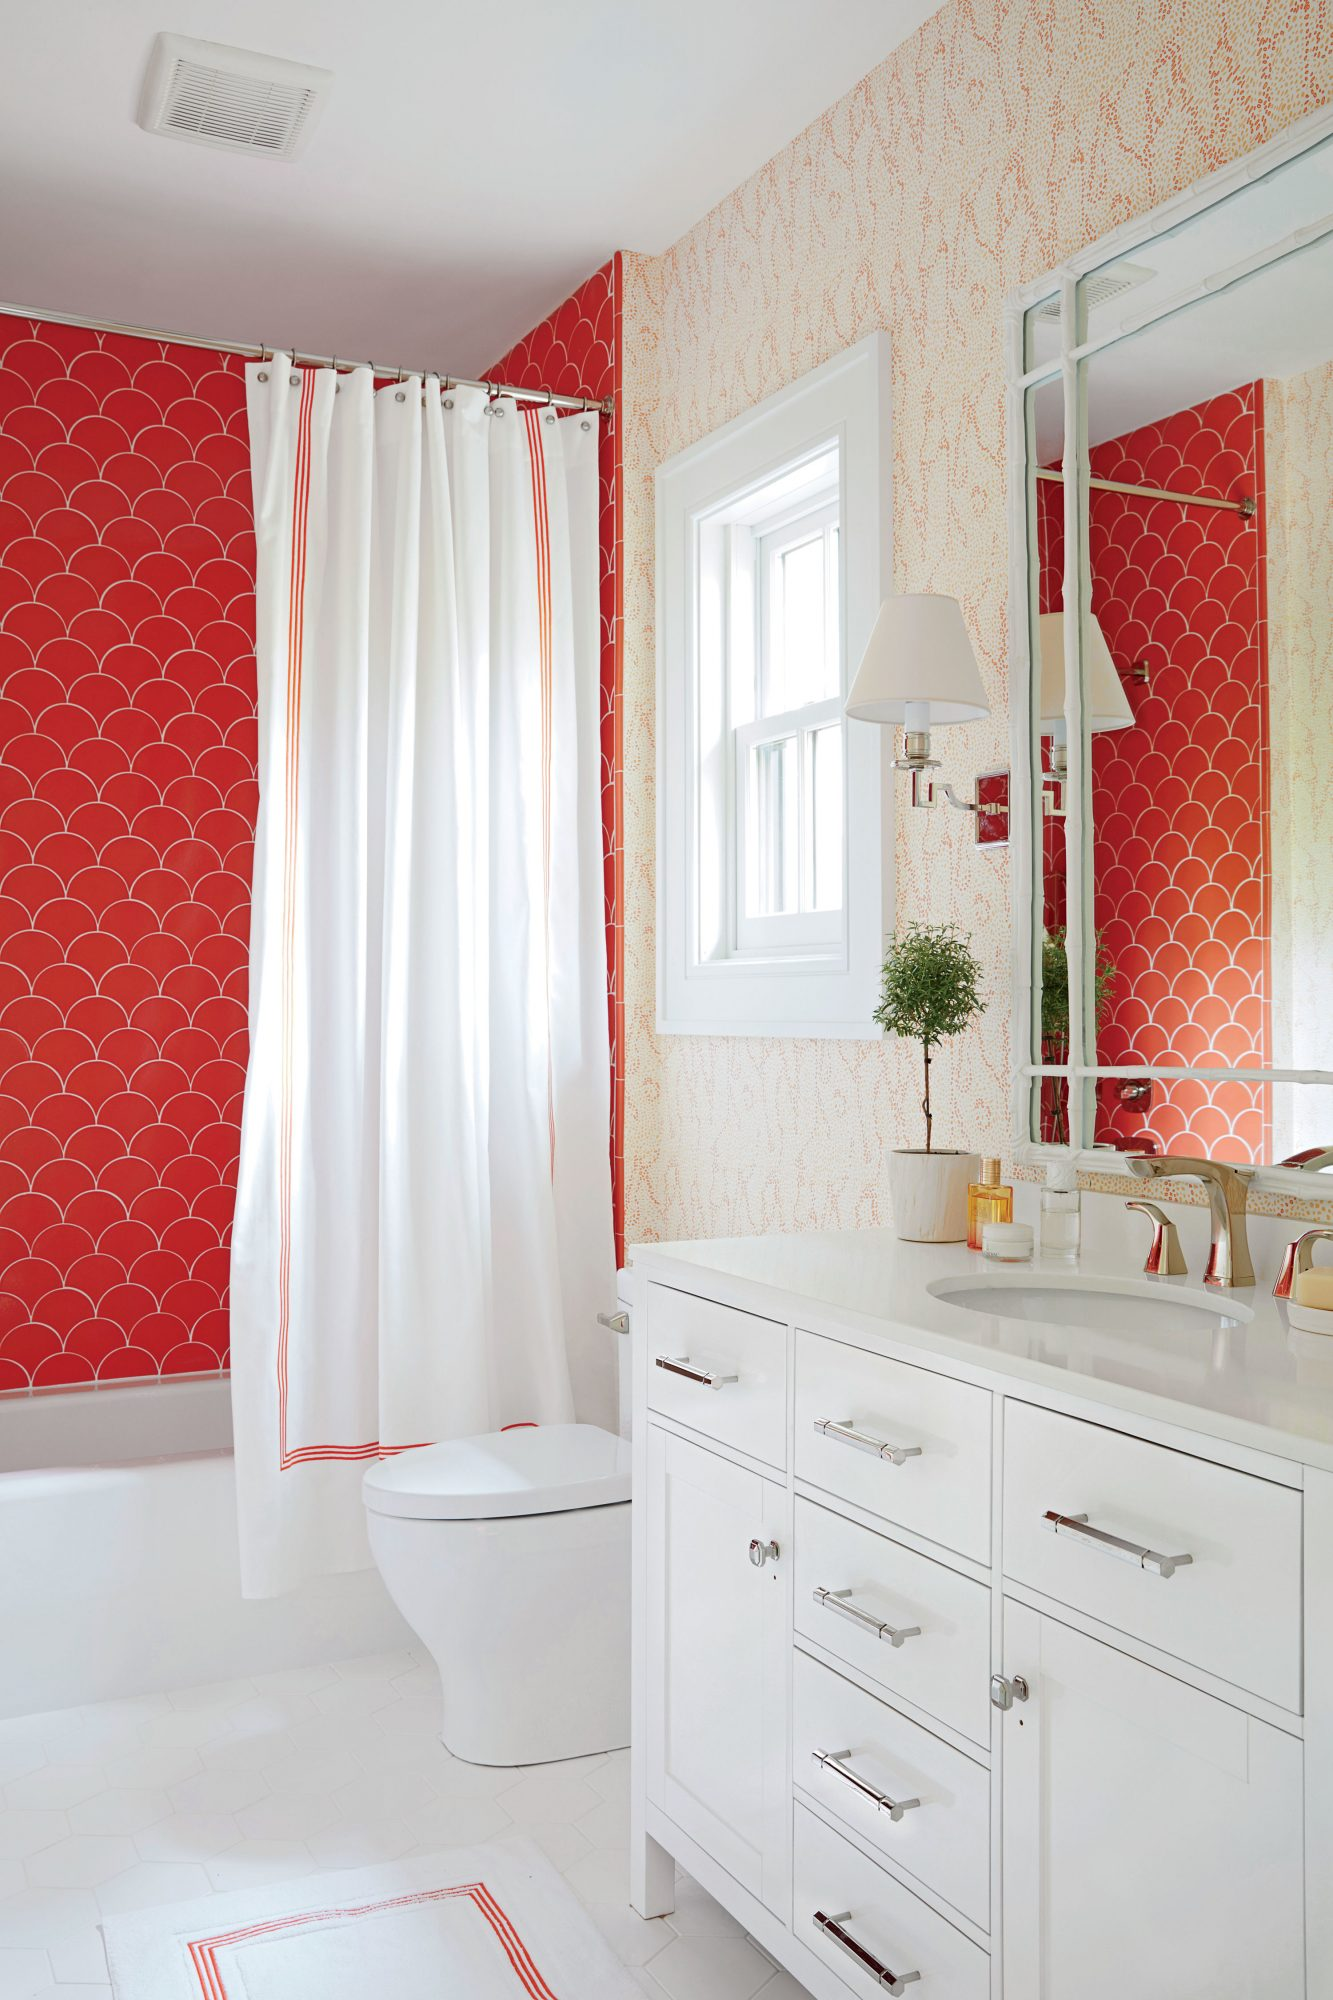 Bathroom #2: Rise & Shine Tiles. The half-arc pattern of these tangerine tub tiles is reminiscent of the rising sun, which is brilliant as a backdrop for morning soaks. Pair with a wallpaper smaller in scale but in the same color family.